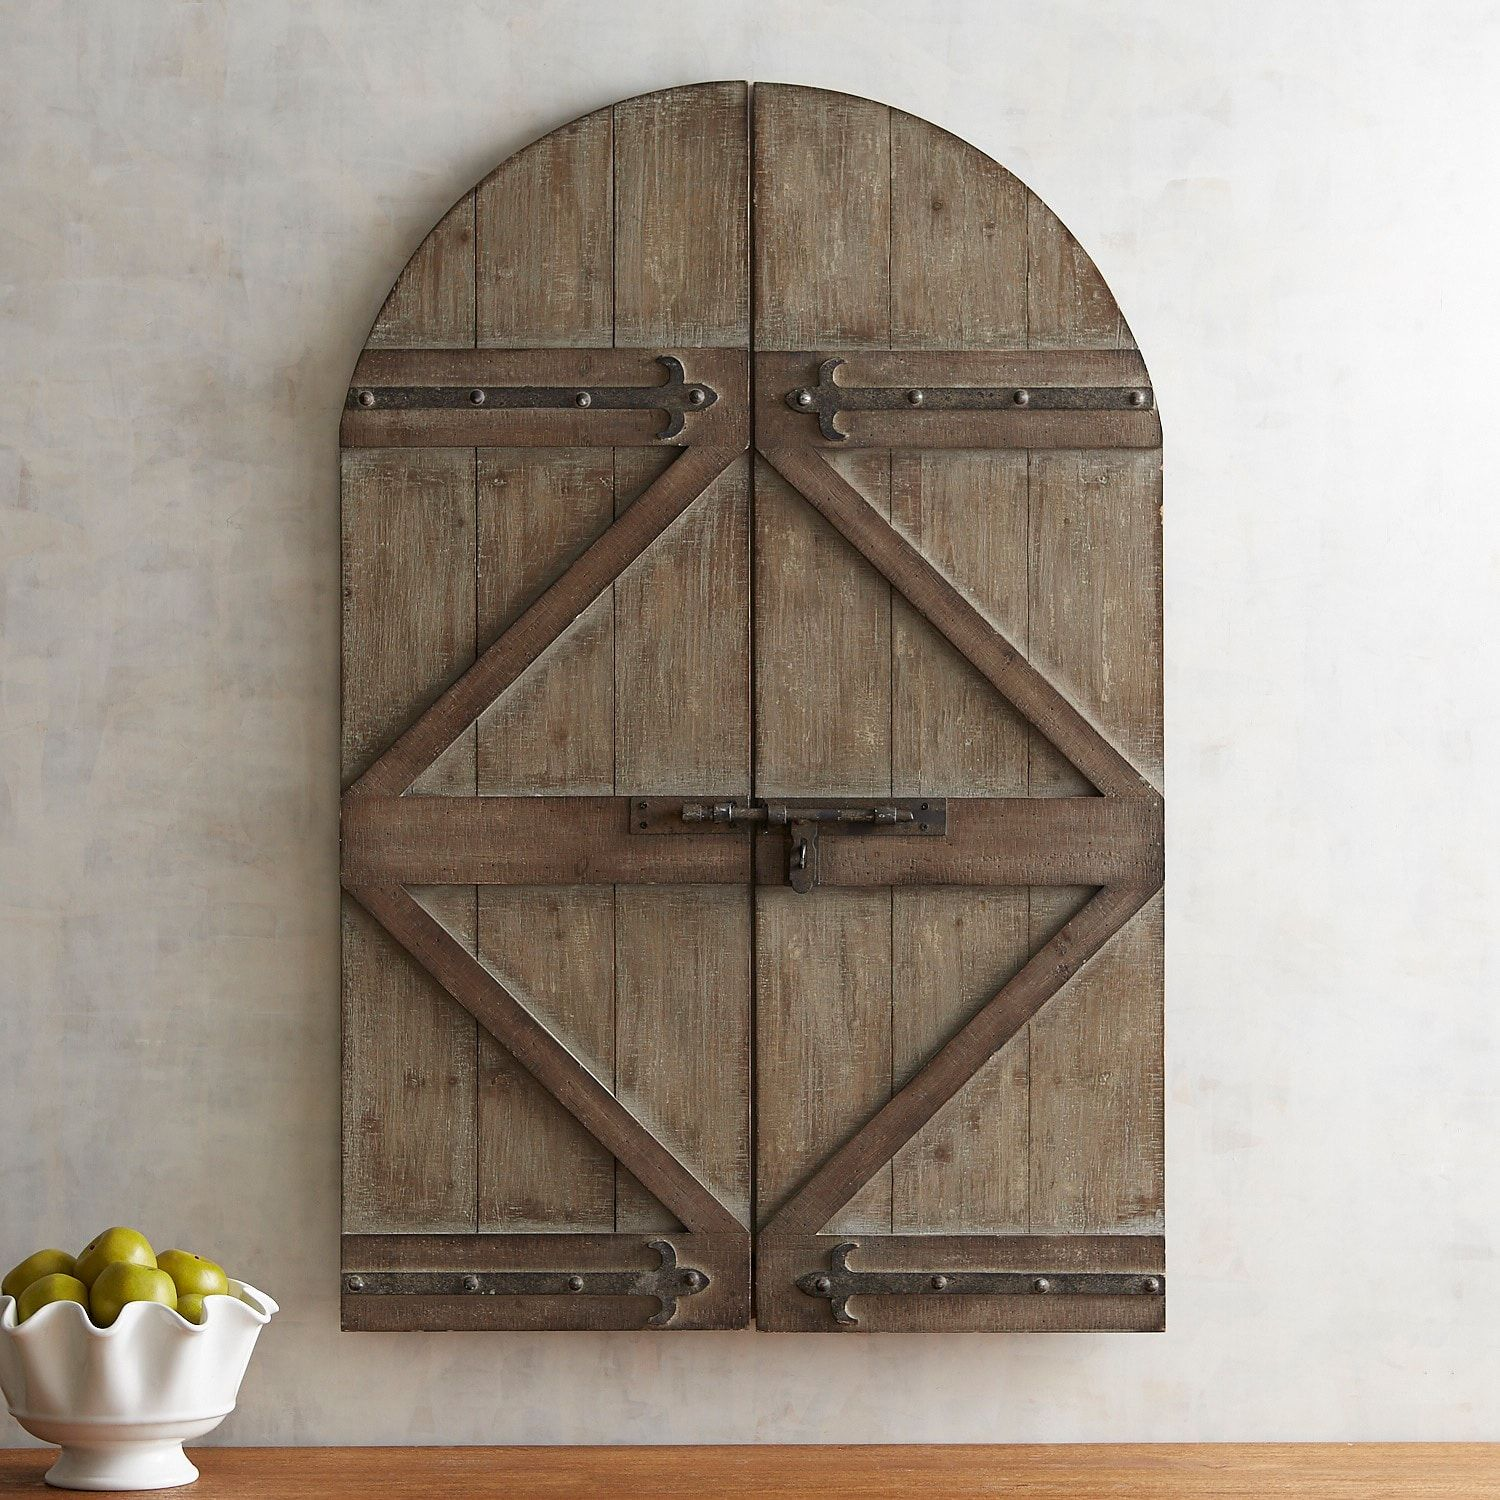 Barn Door Arch Wall Decor (With images) Arched wall